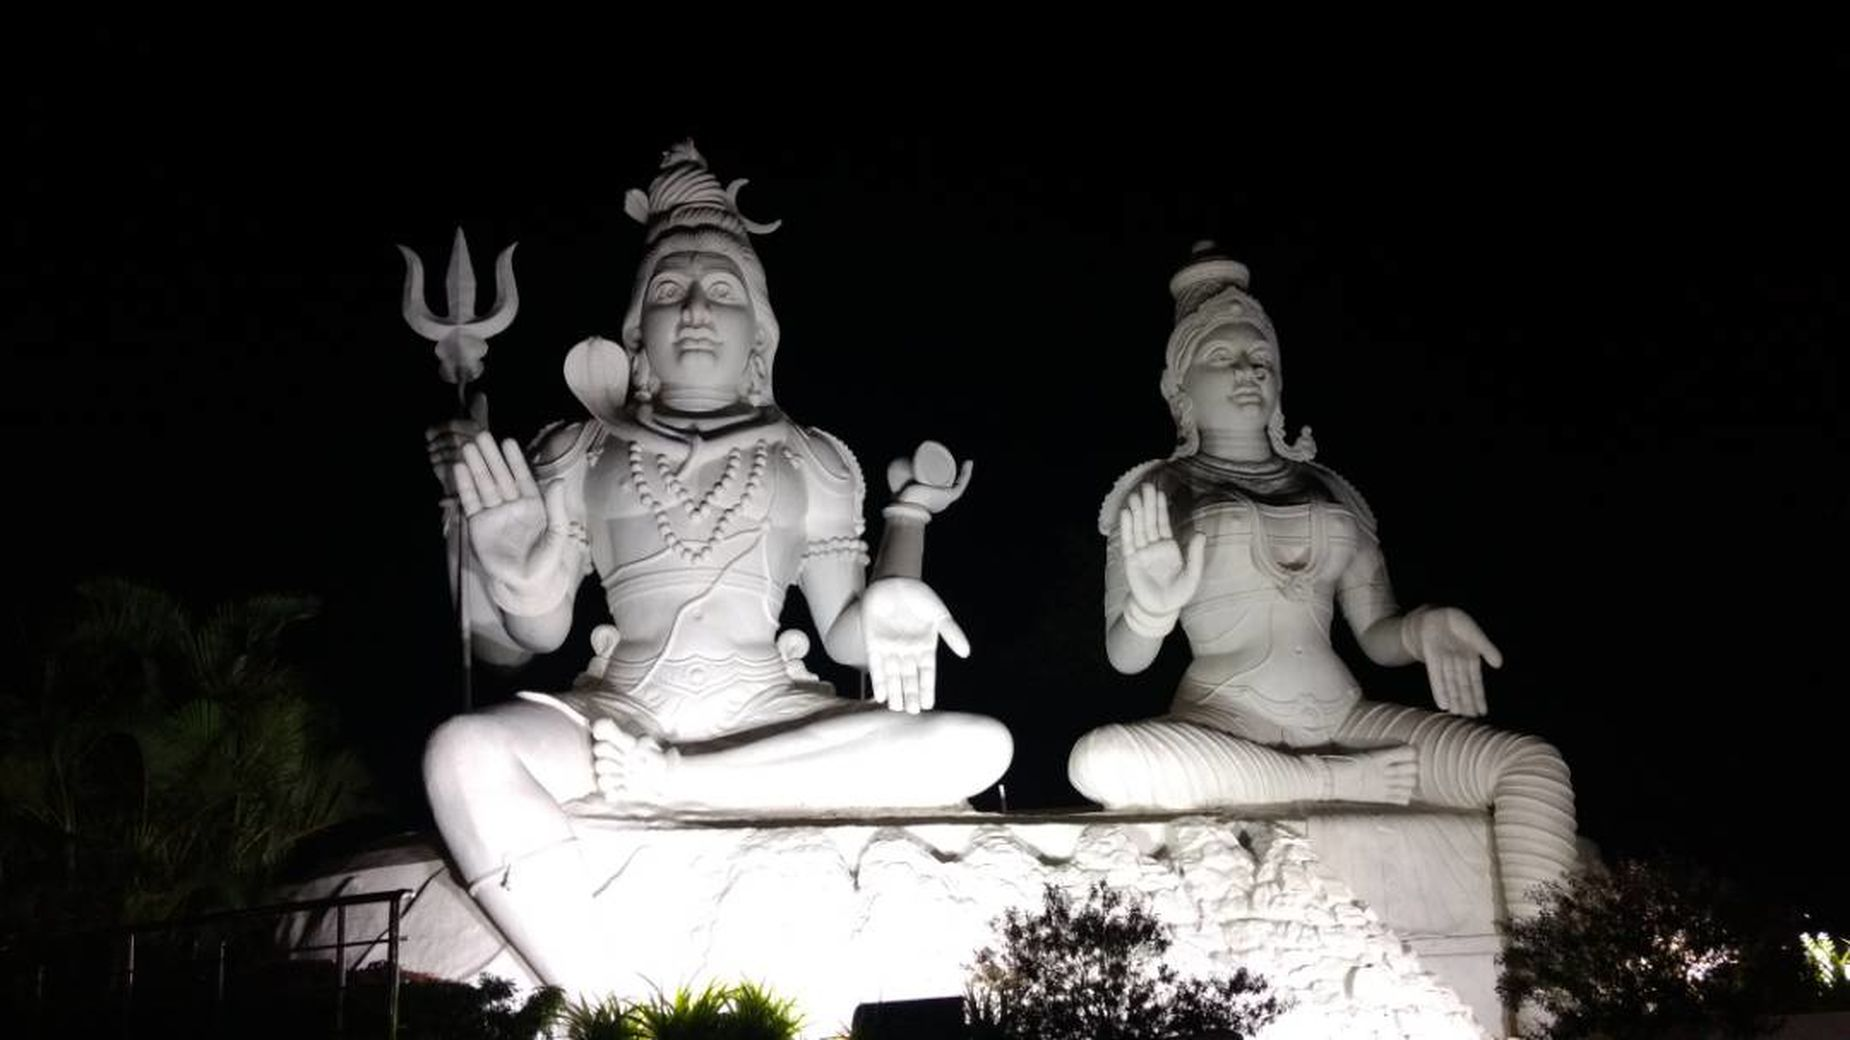 Night photography. Sculpture Divine Beauty Shivshakti Kailashgiri